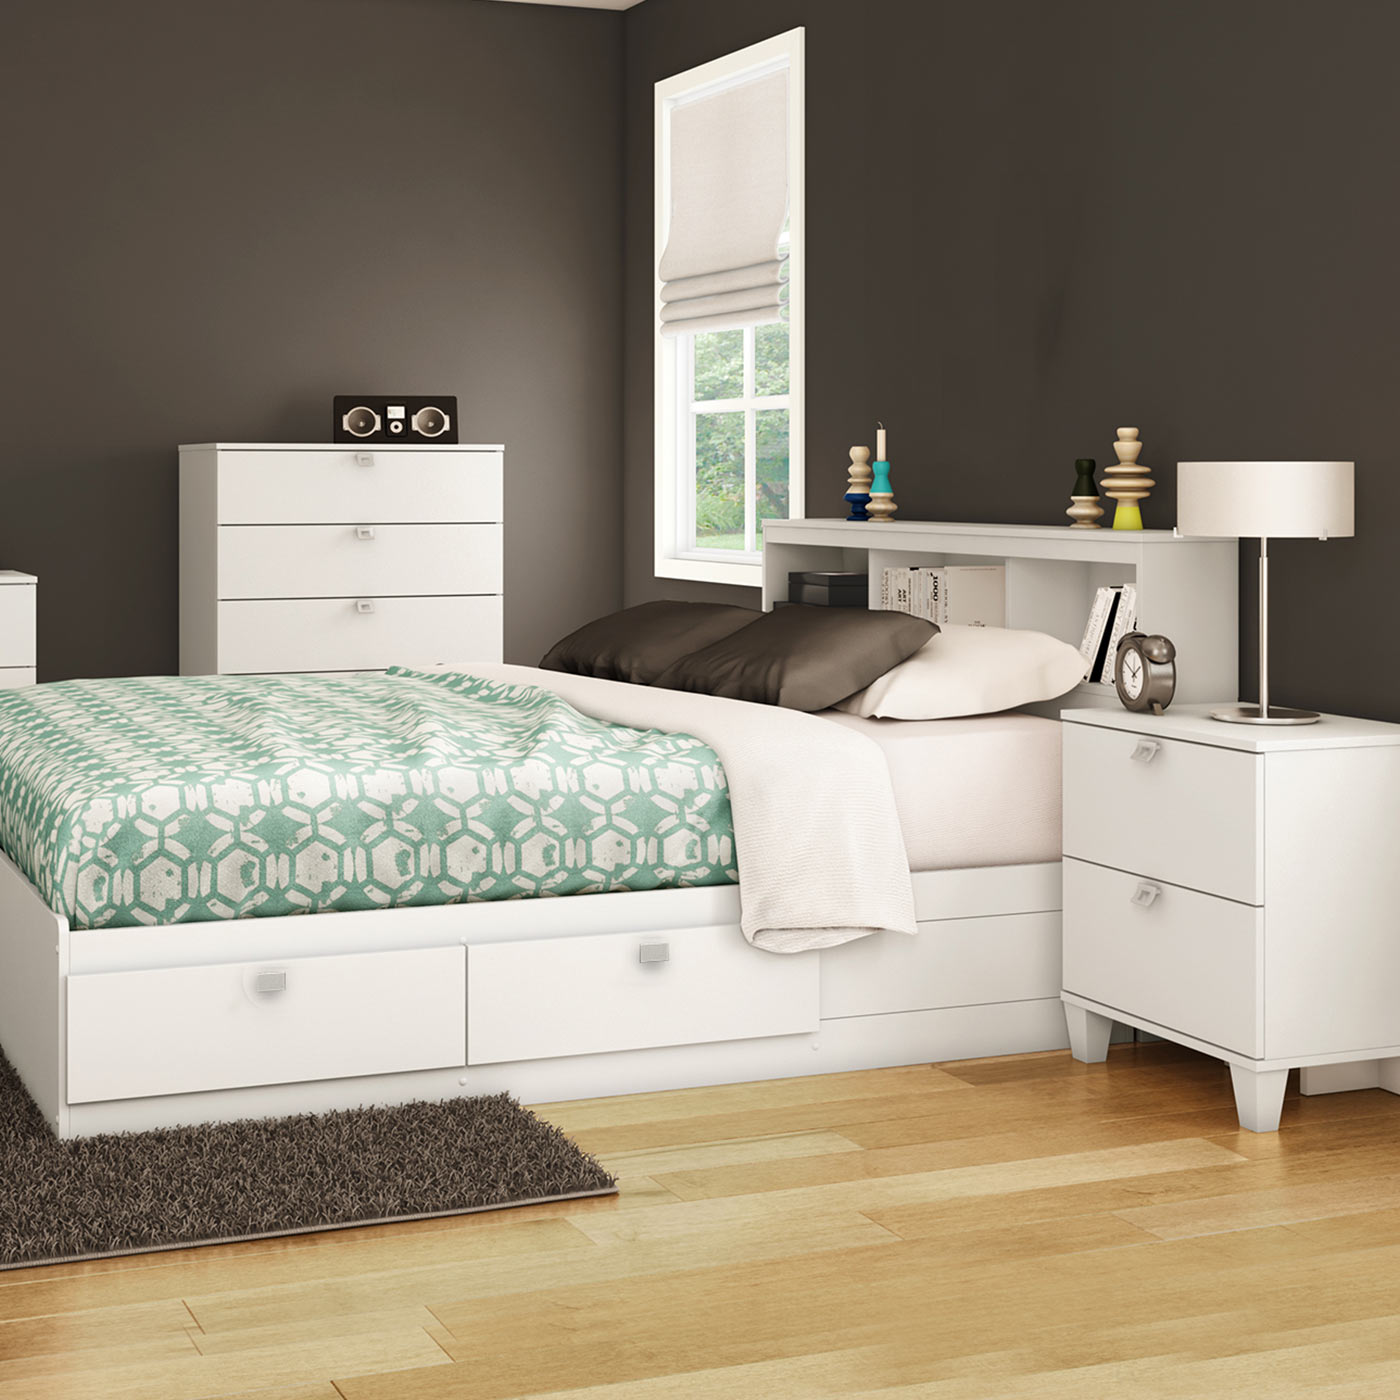 Southshore Karma 4 Piece Bedroom Set Karma Twin Mates Bed Bookcase Headboard 5 Drawer Chest And Nightstand In Pure White